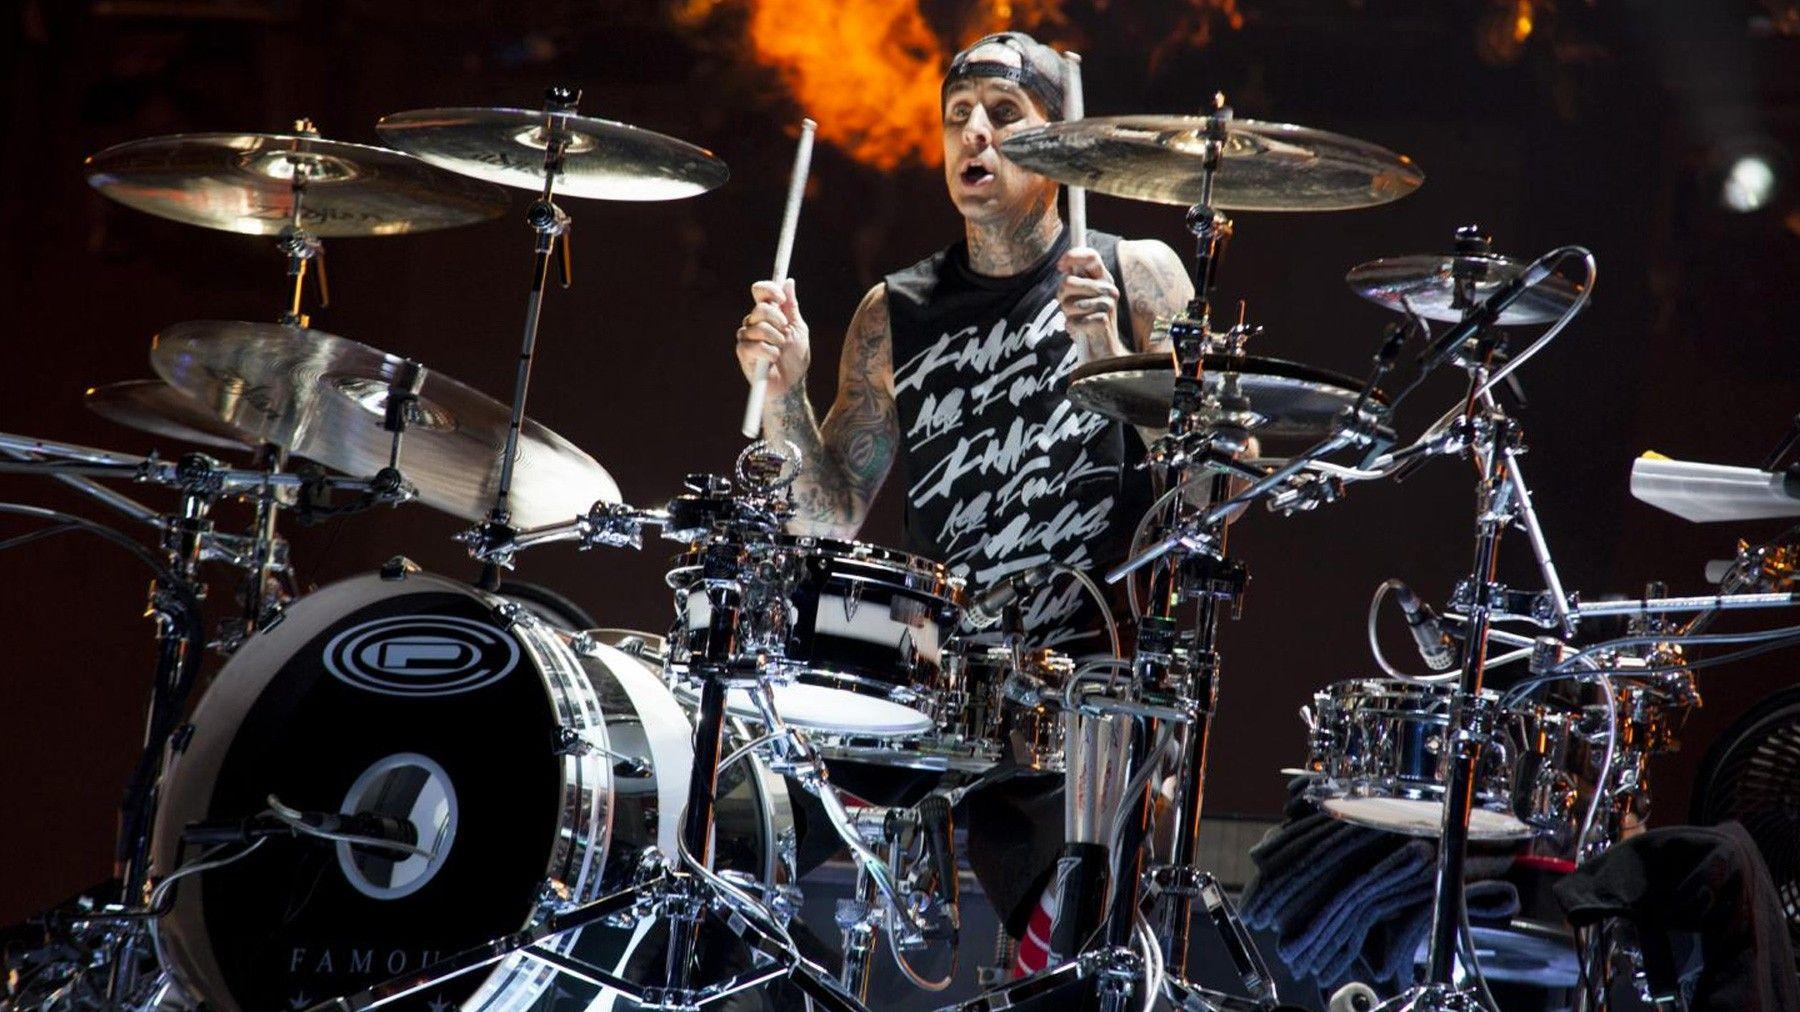 Blink 182's Travis Barker joins Antemasque | Upset